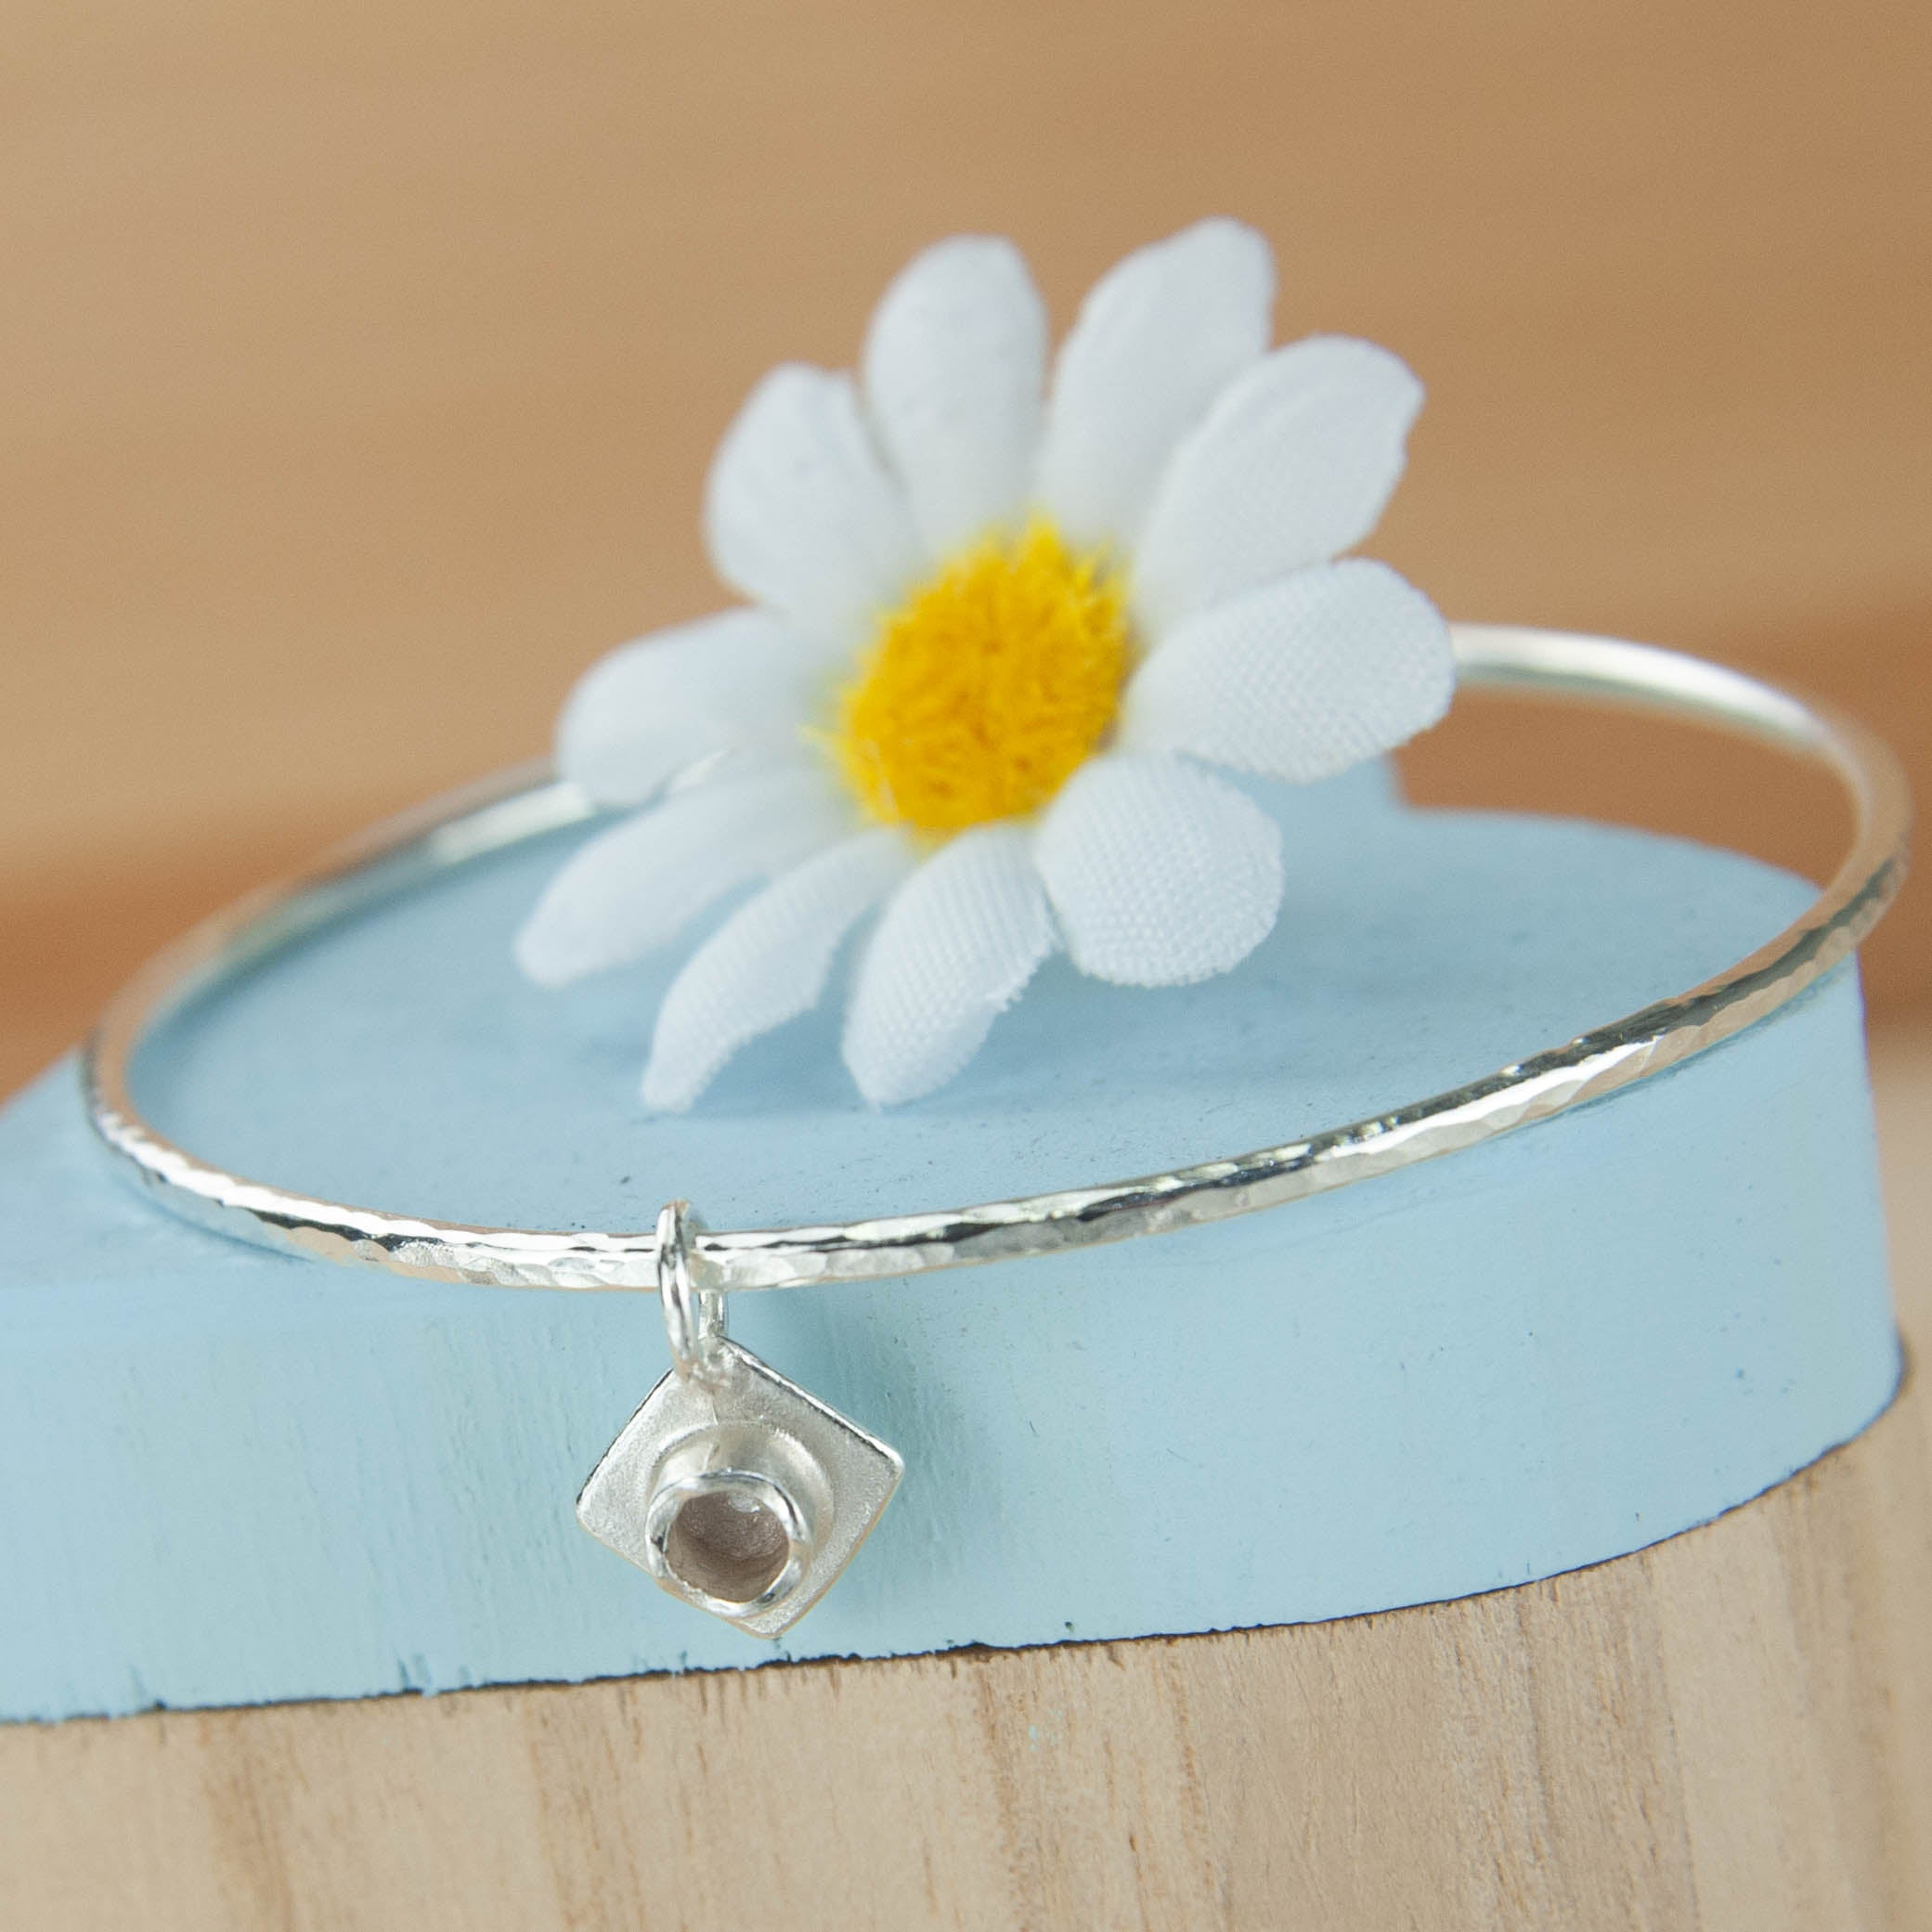 2mm Graduation Bangle